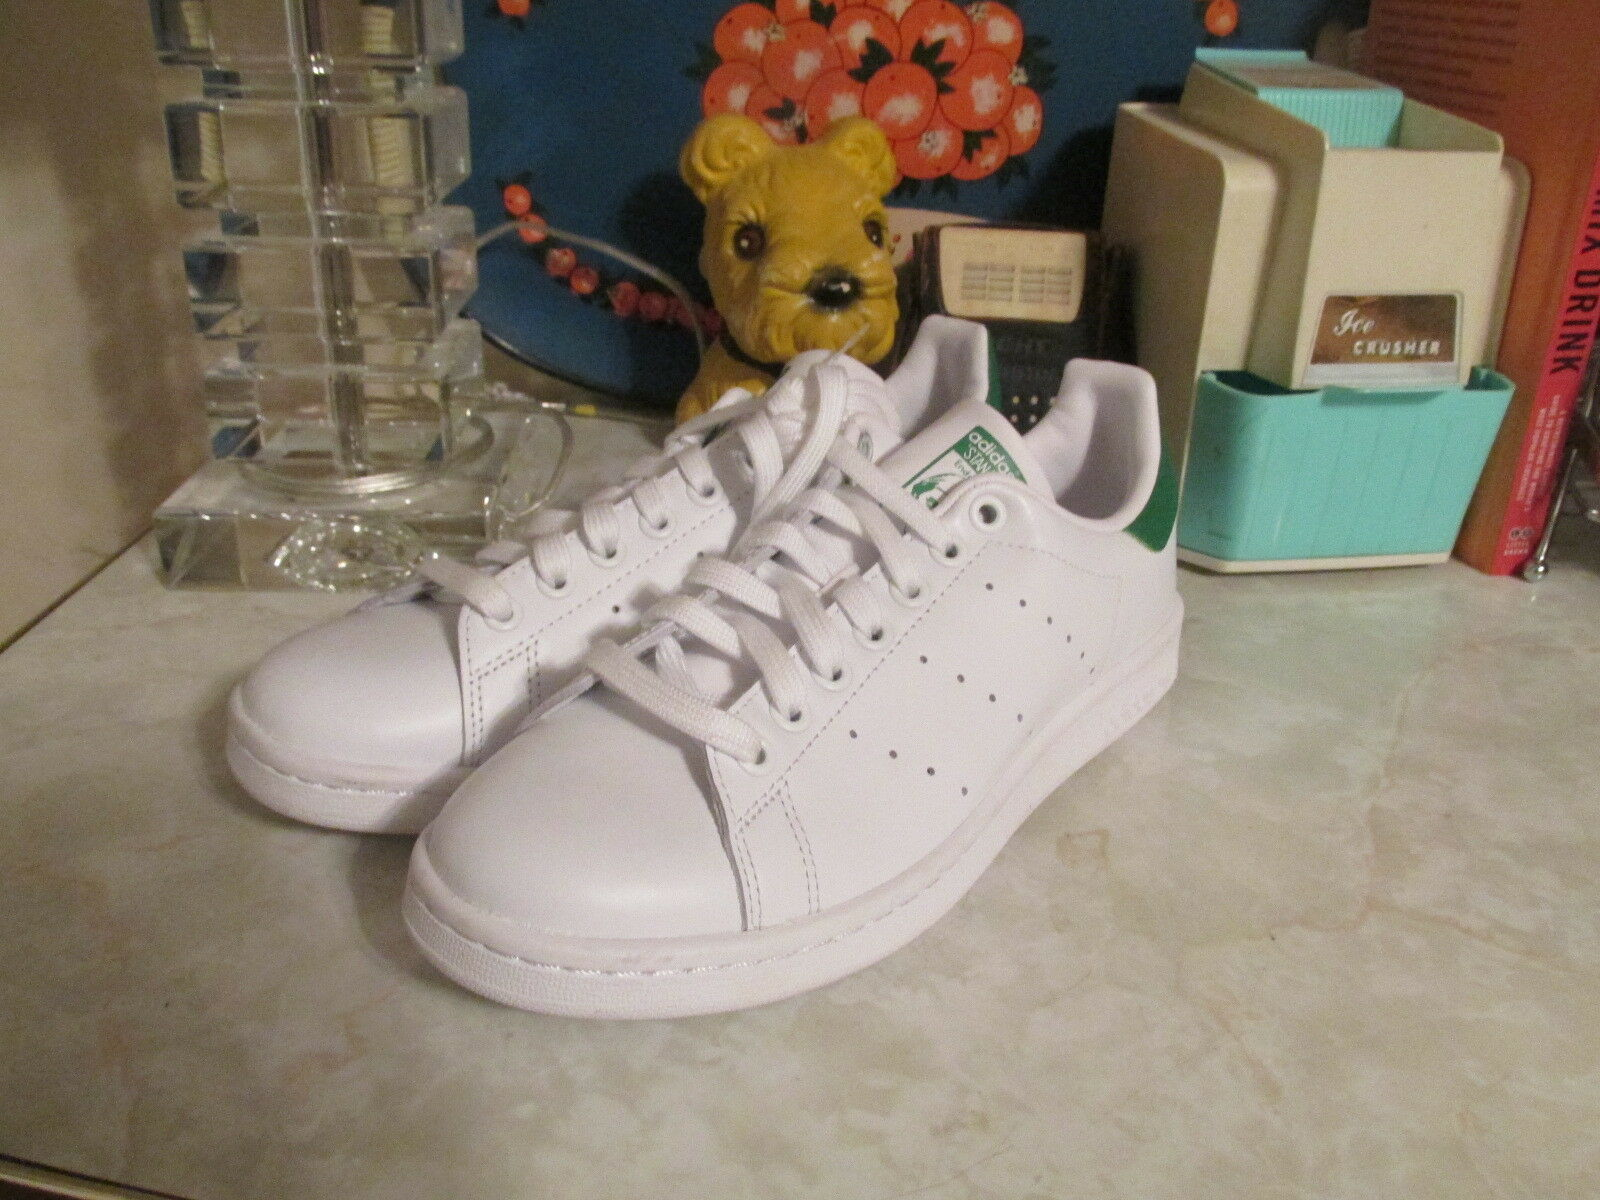 Adidas Originals Stan Smith sneaker Low el blanco Verde m20324 confortable el Low mas popular de zapatos para hombres y mujeres 04aebc